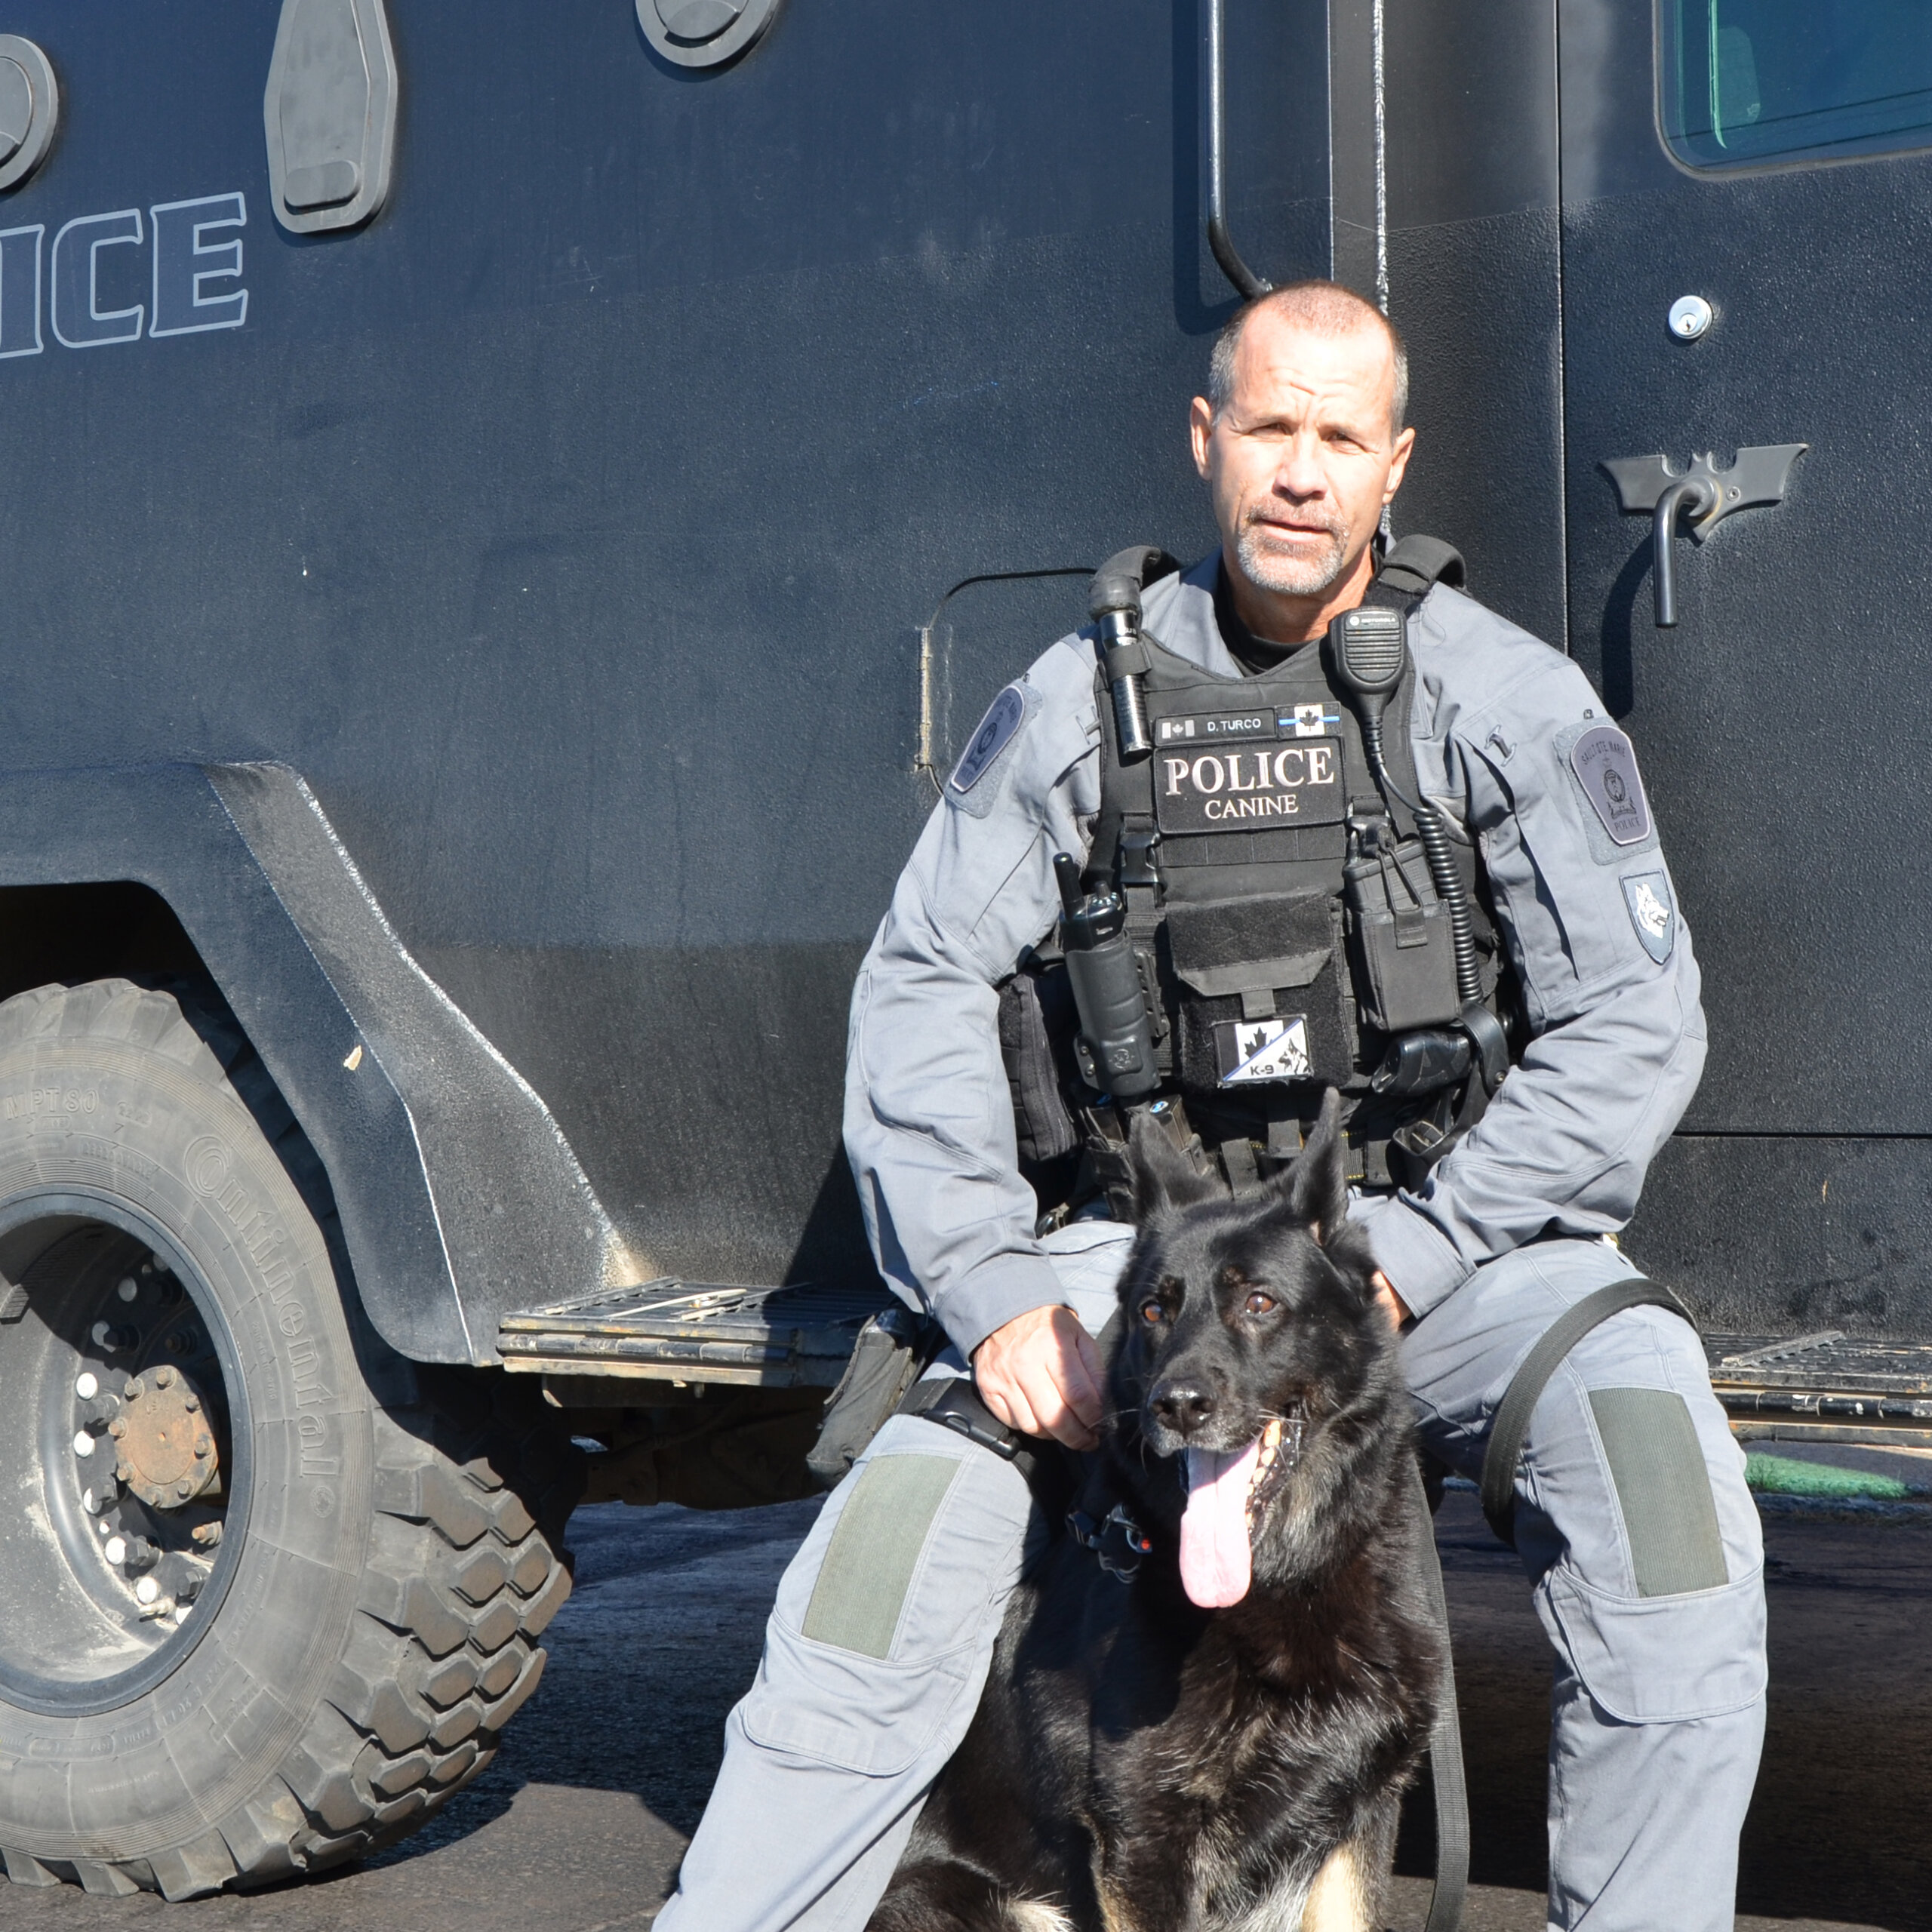 Cst. Dan Turco with PSD Justice